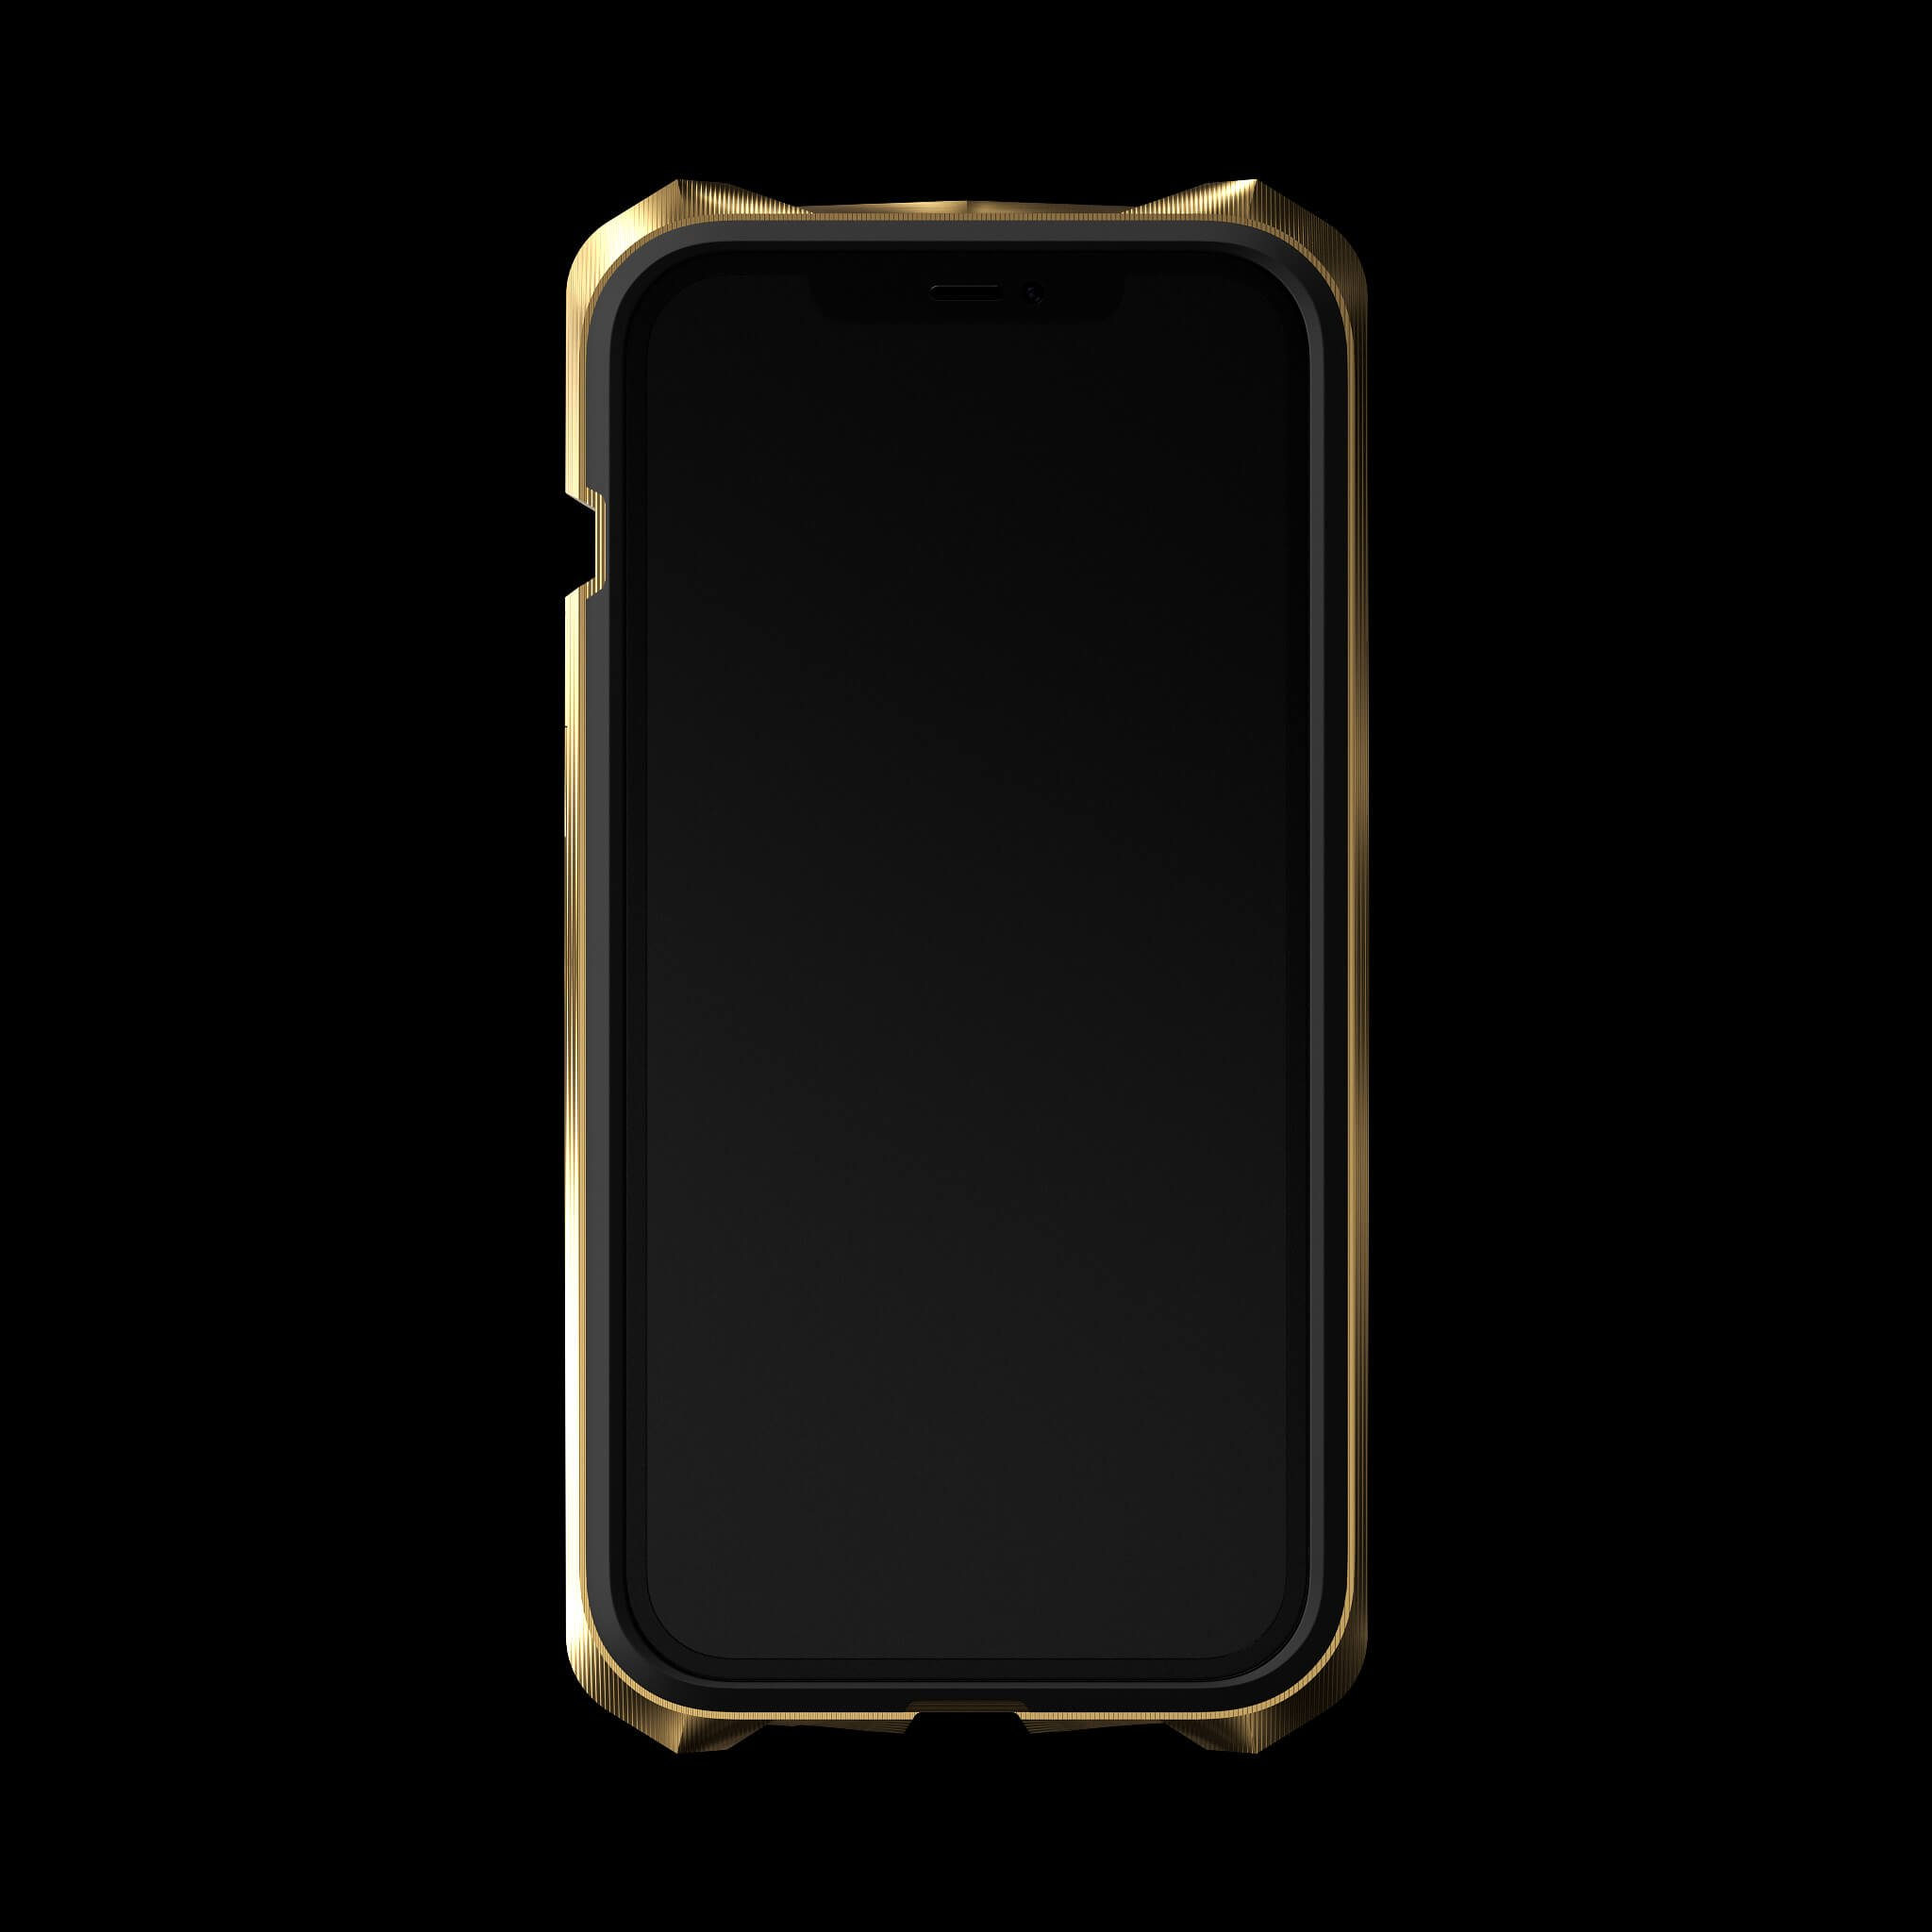 advent gold pvd coated luxury titanium iphone 12 pro case